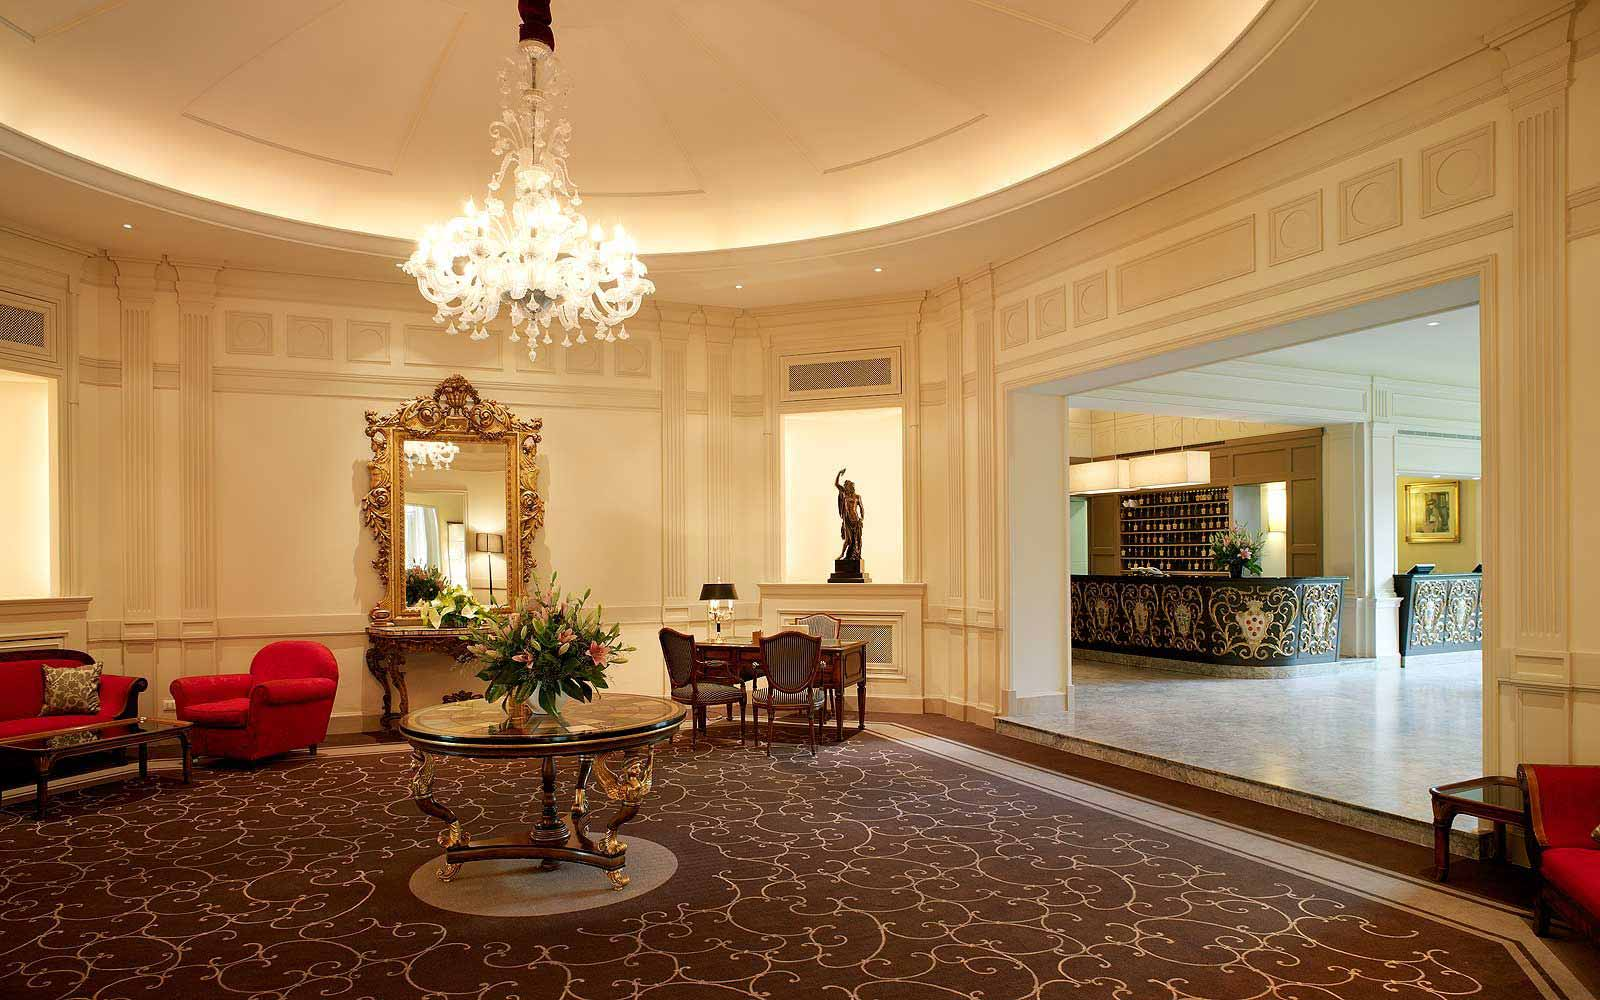 Lobby at Grand Hotel Villa Medici